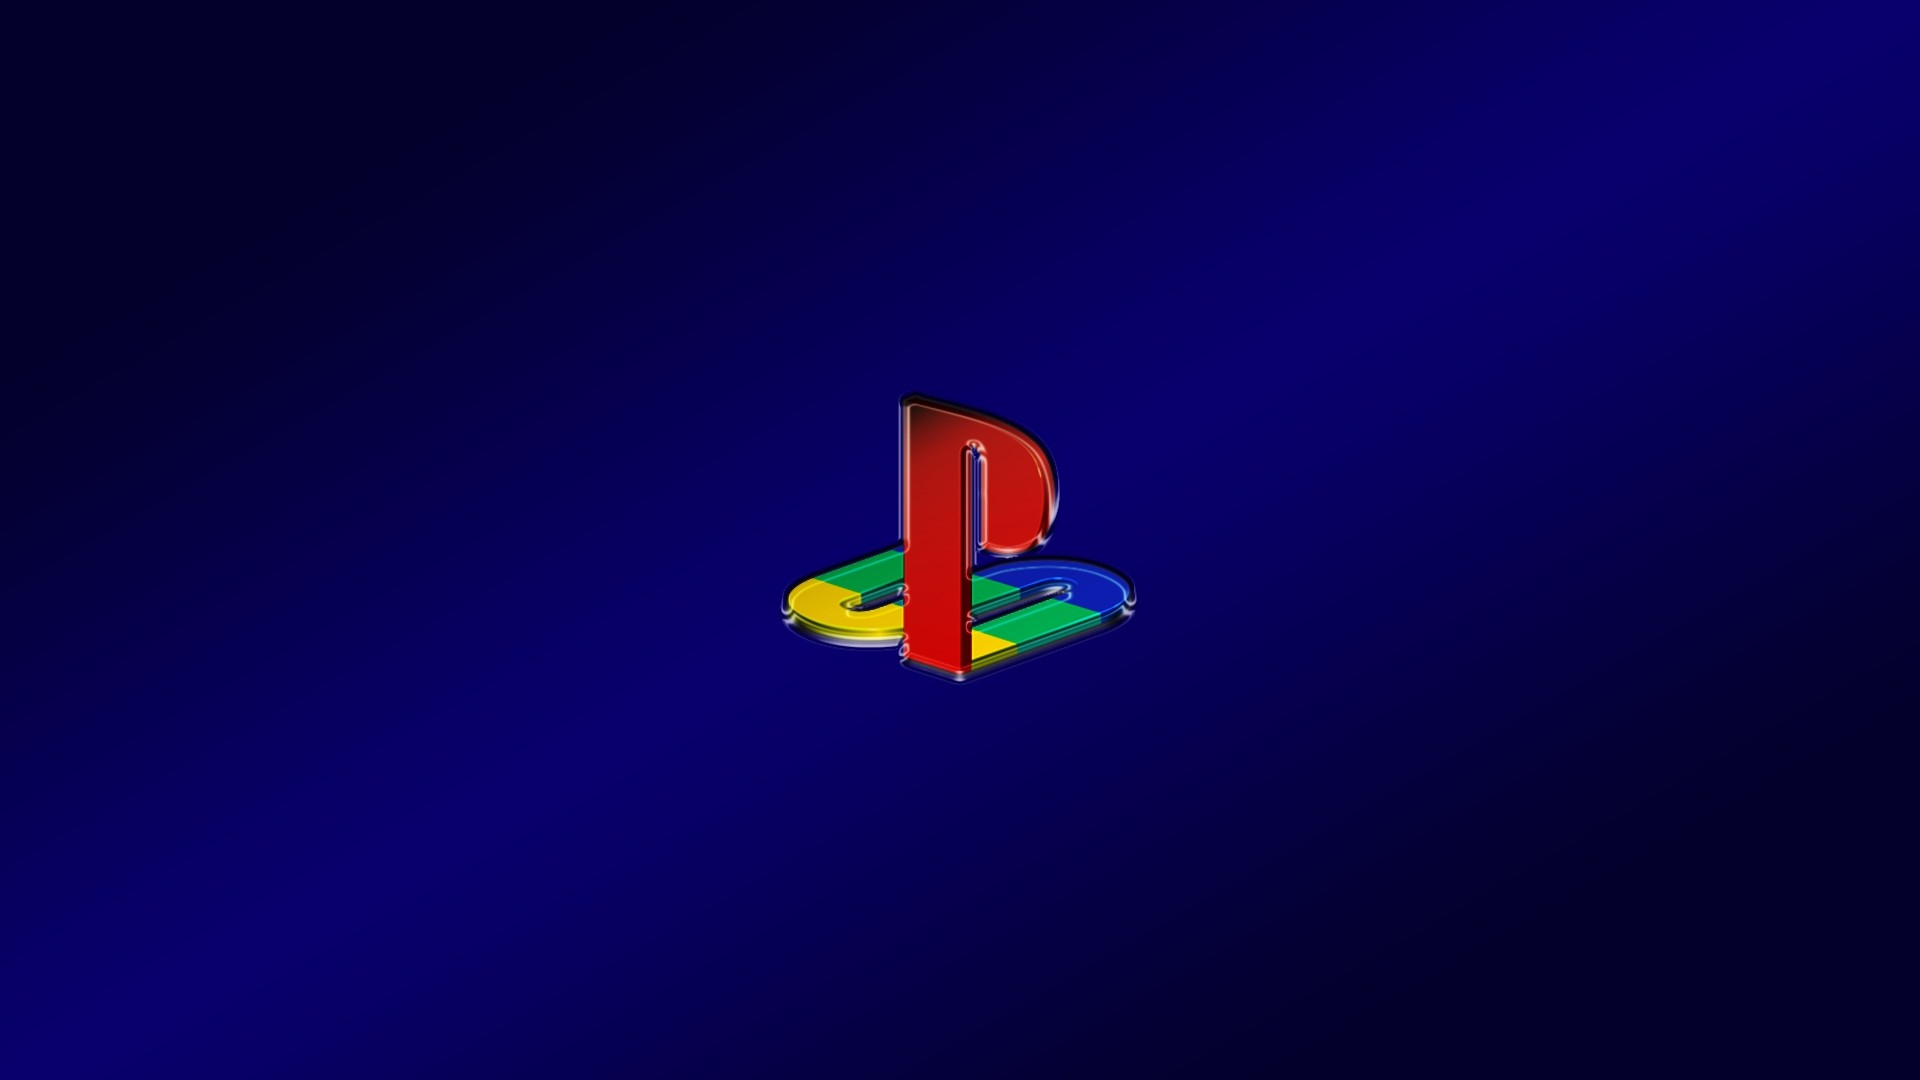 Playstation Wallpaper and Background